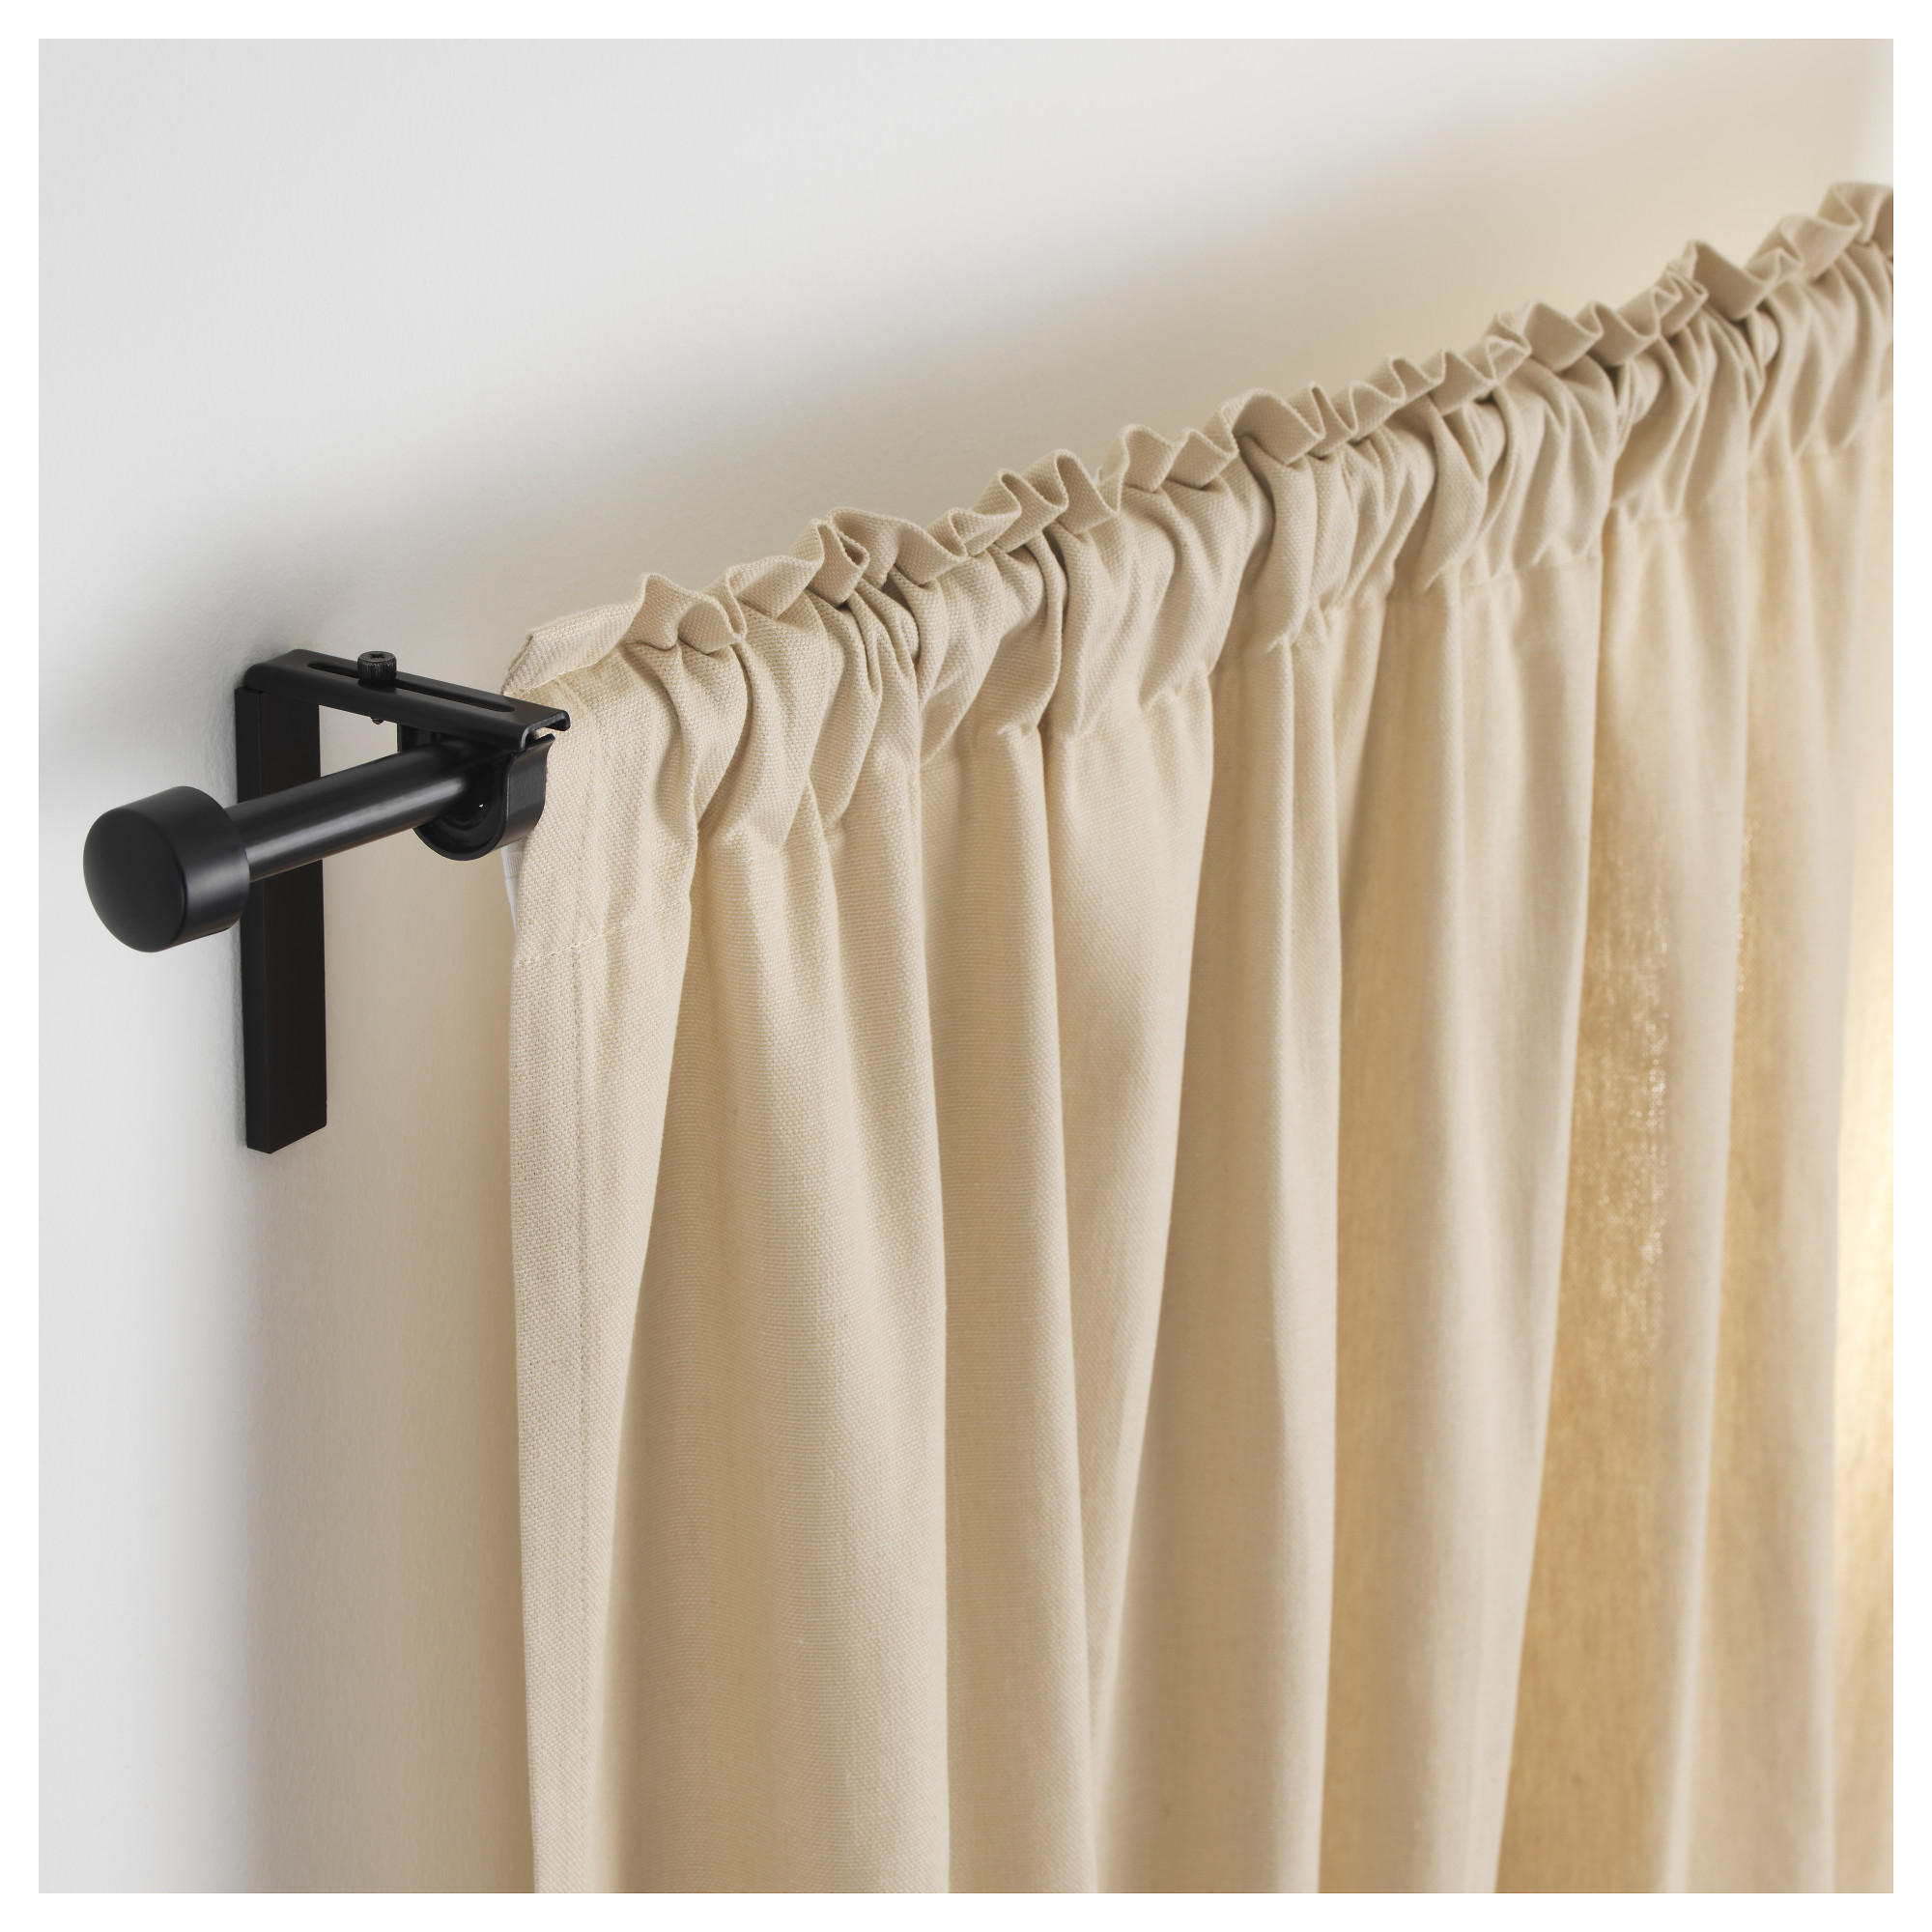 ta blinds table domestications from grey curtains walmart shower dark at drapes white amazing curtain linen shades blackout amazon exquisite teal roman target ikea soundproof sheer